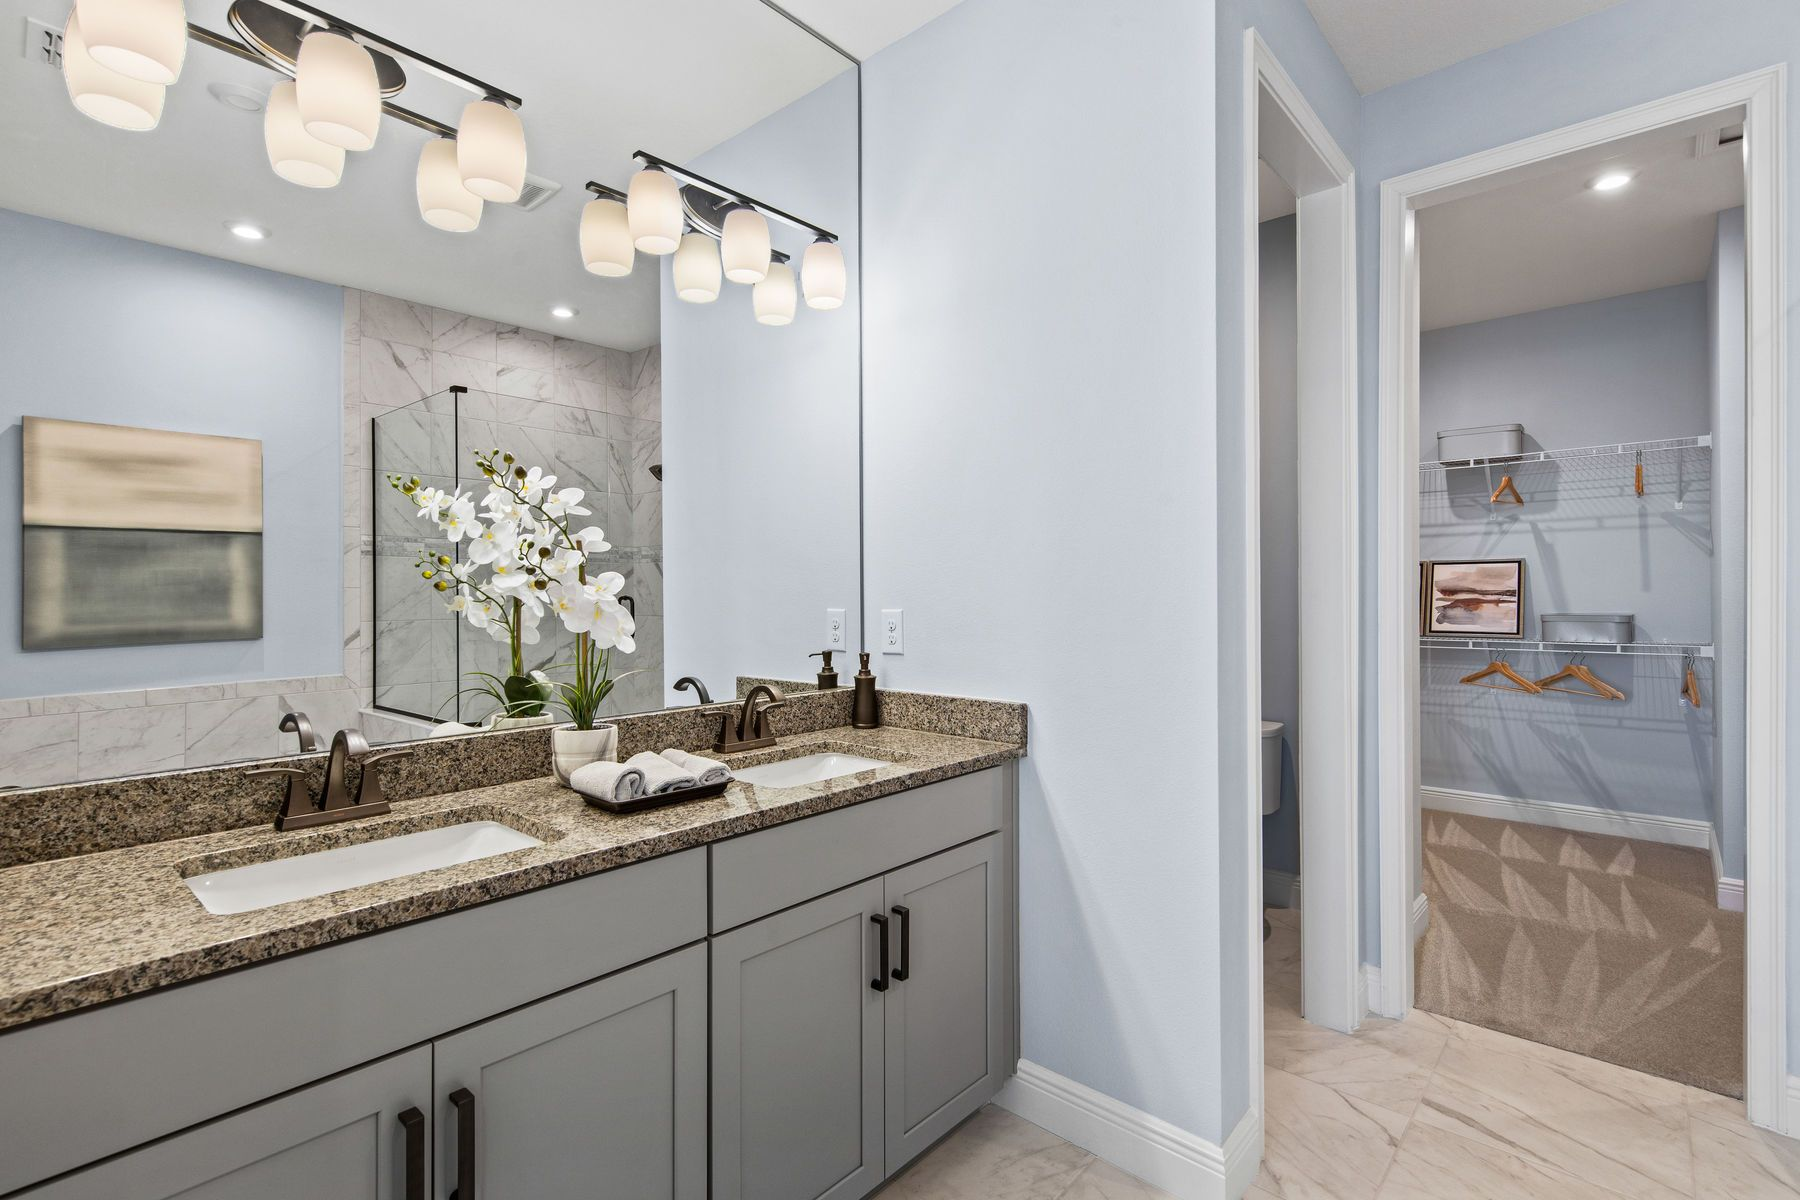 Bathroom featured in the Oceangrove By Mattamy Homes in Naples, FL